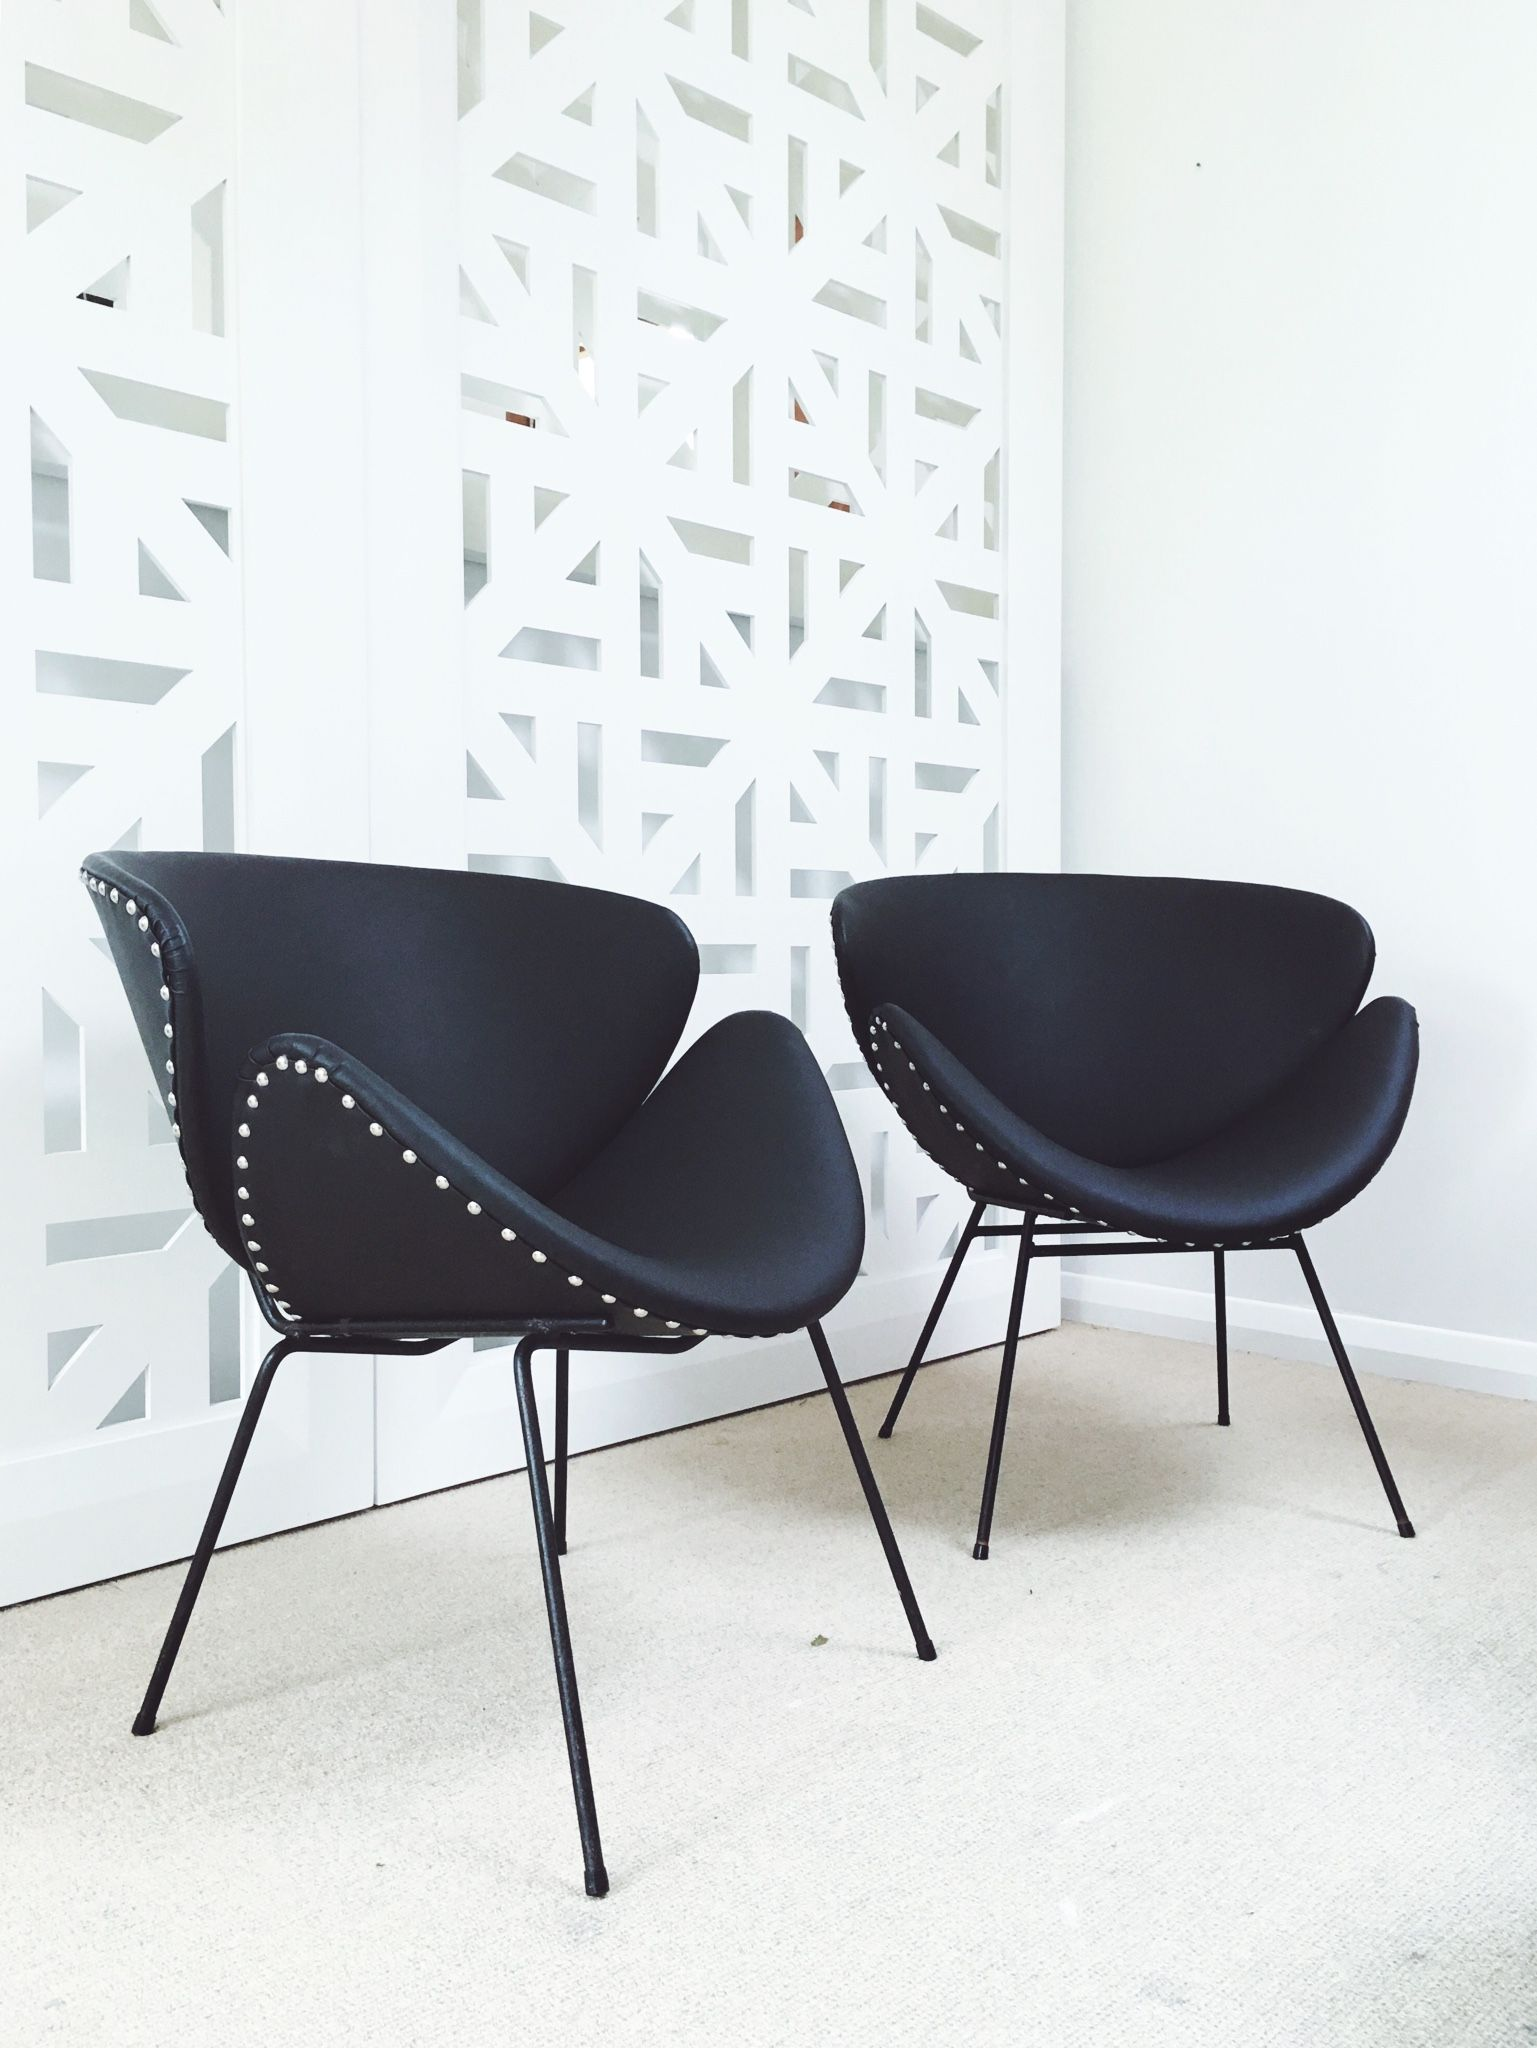 Lip Chair A Pair Of Original Retro Lip Chairs Upholstered In Matte Black